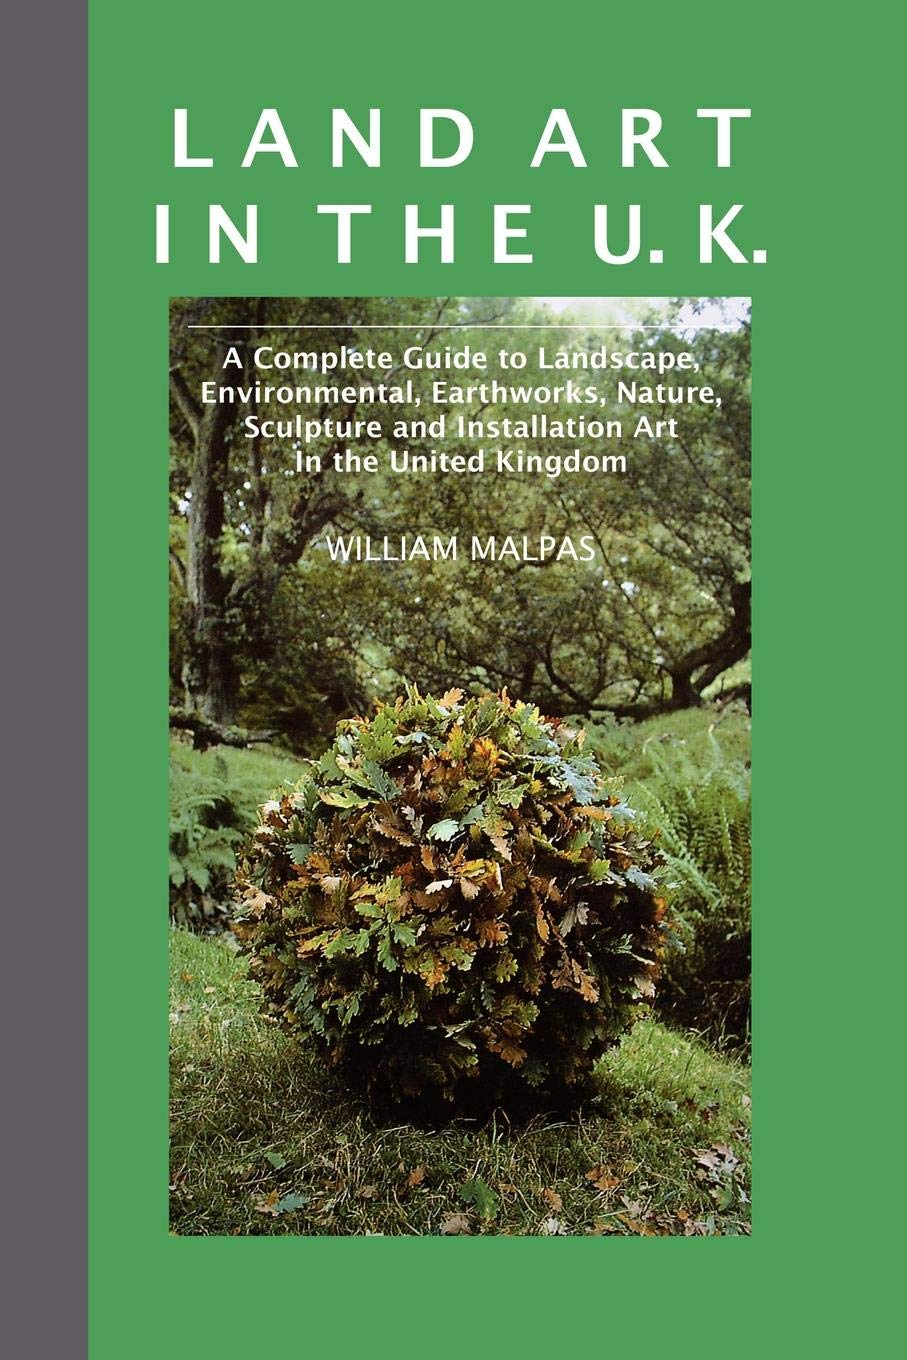 Land Art in the U.K.: A Complete Guide to Landscape, Environmental, Earthworks, Nature, Sculpture and Installation Art in the UK (Contemporary Art) pdf